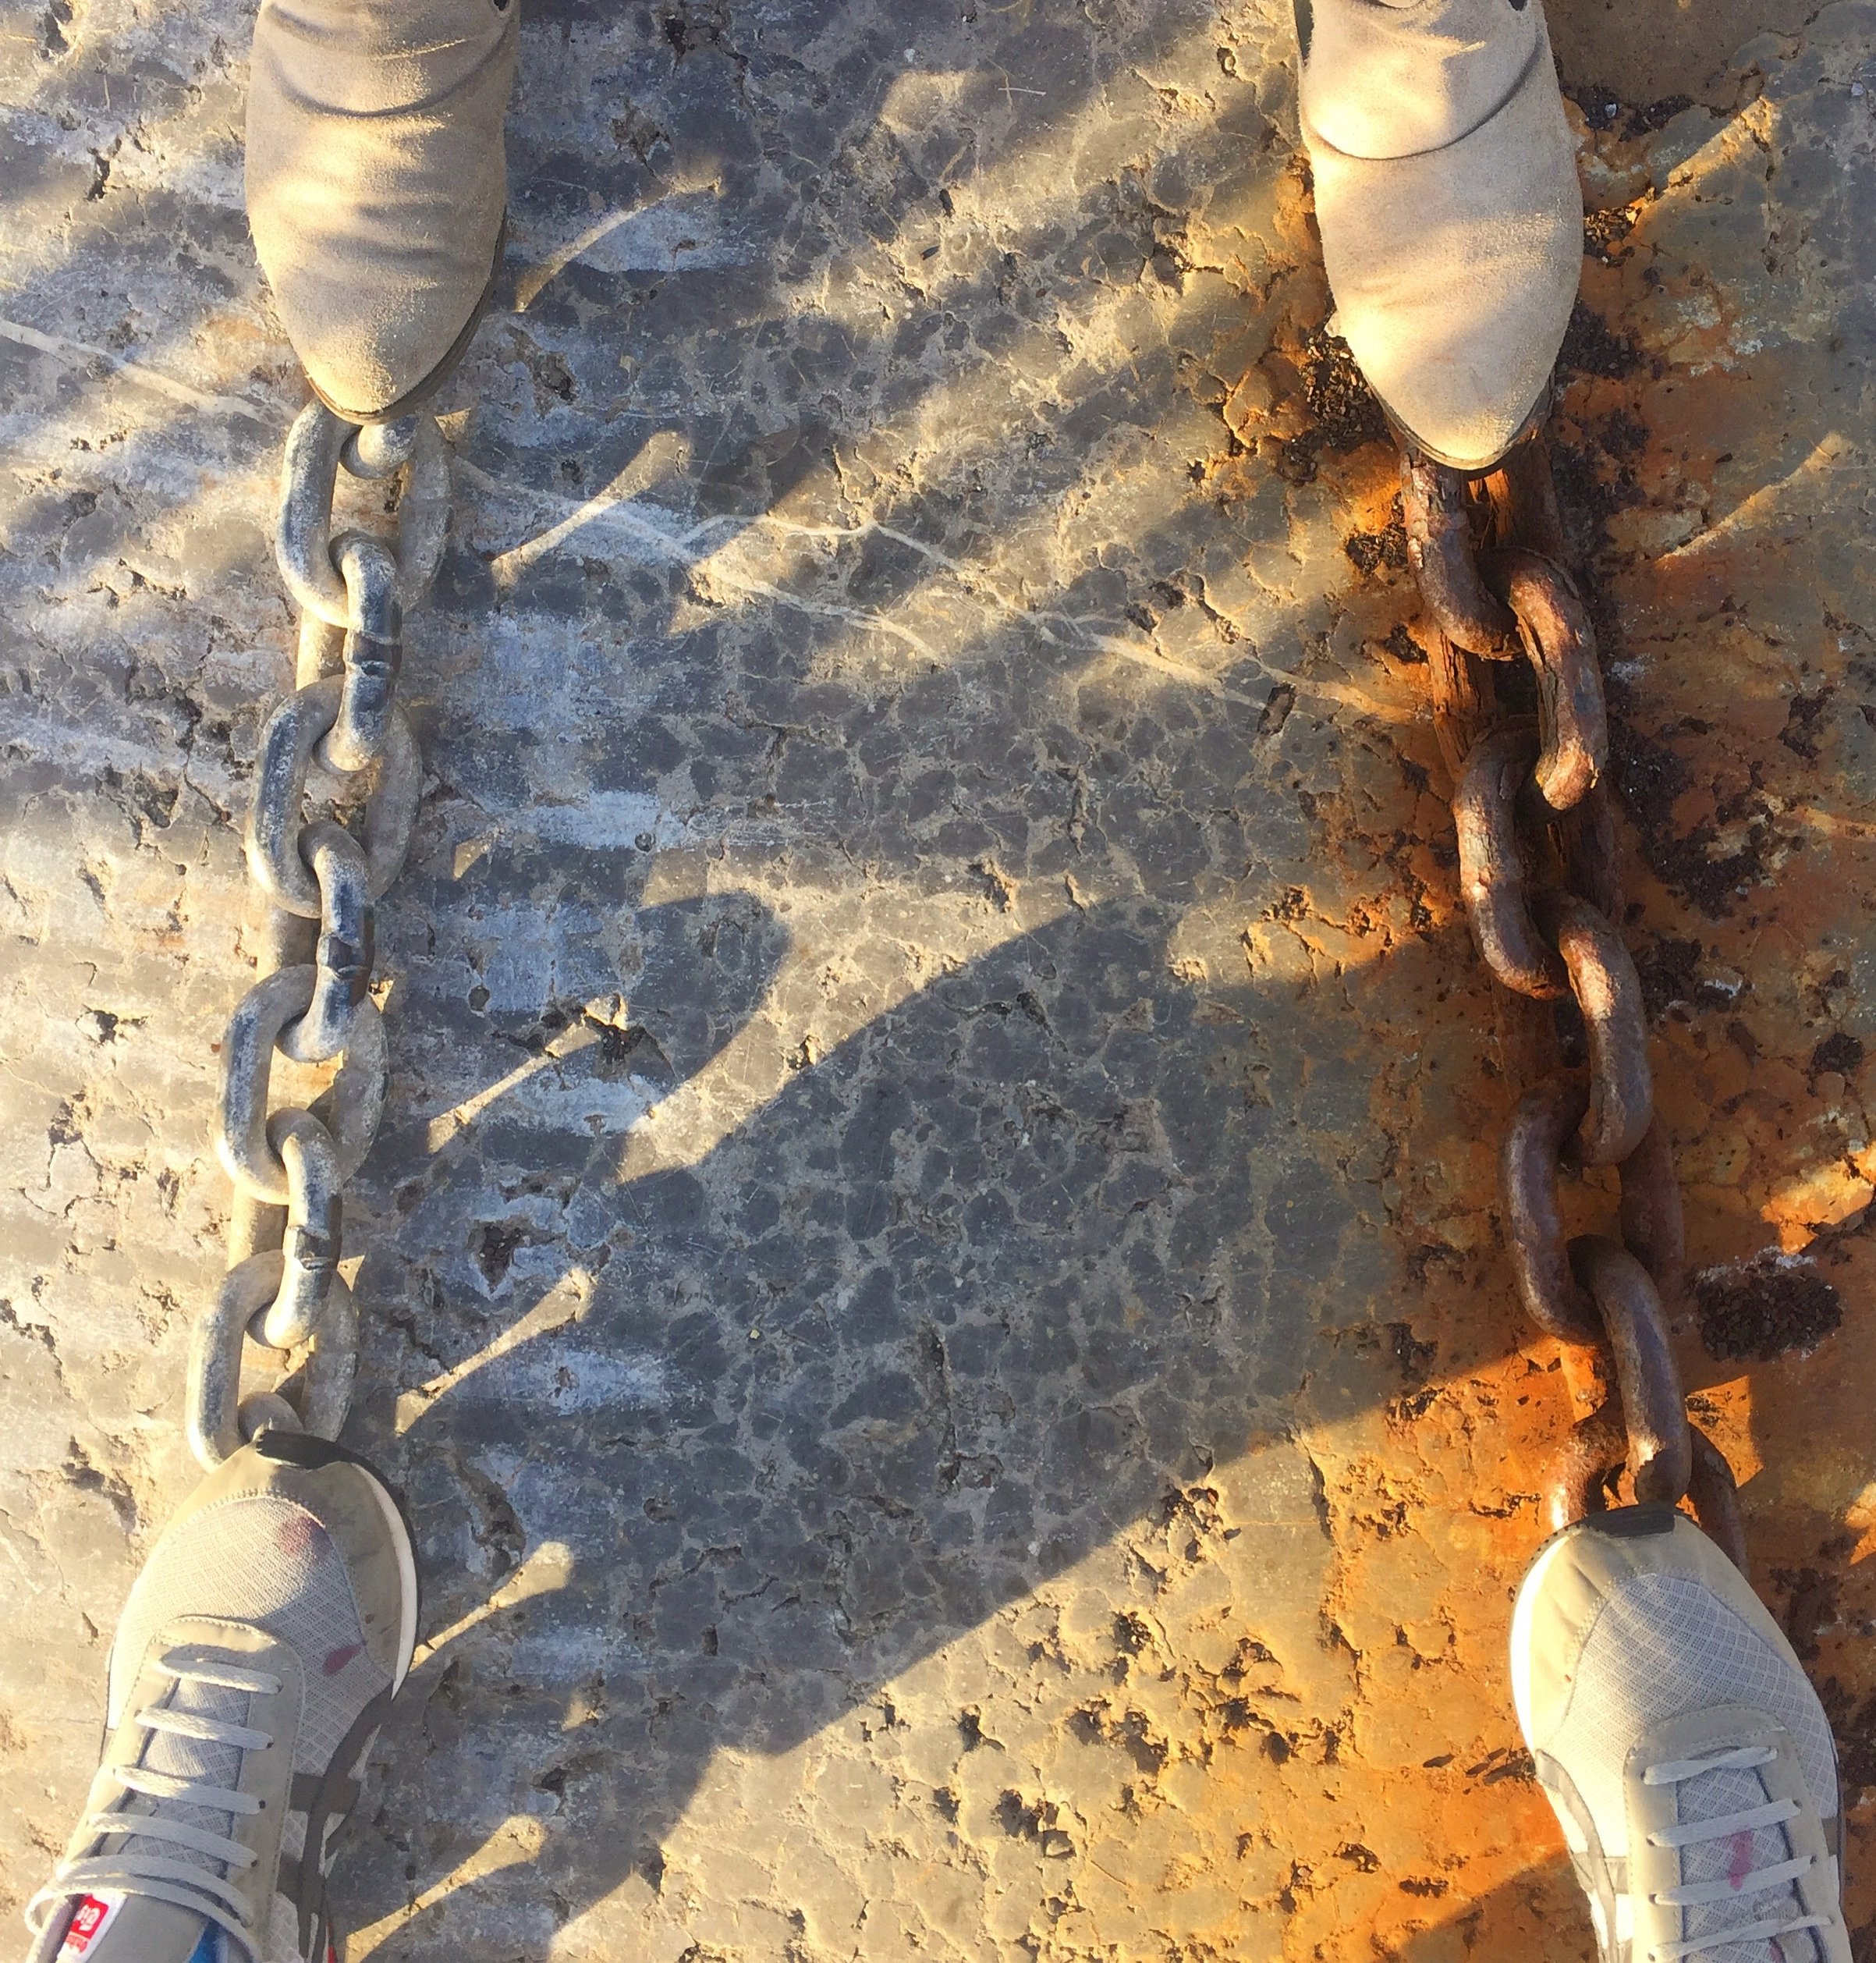 foot_old_chains_rust_Donaghadee_town_harbour_pier_ni_explorer_niexplorer